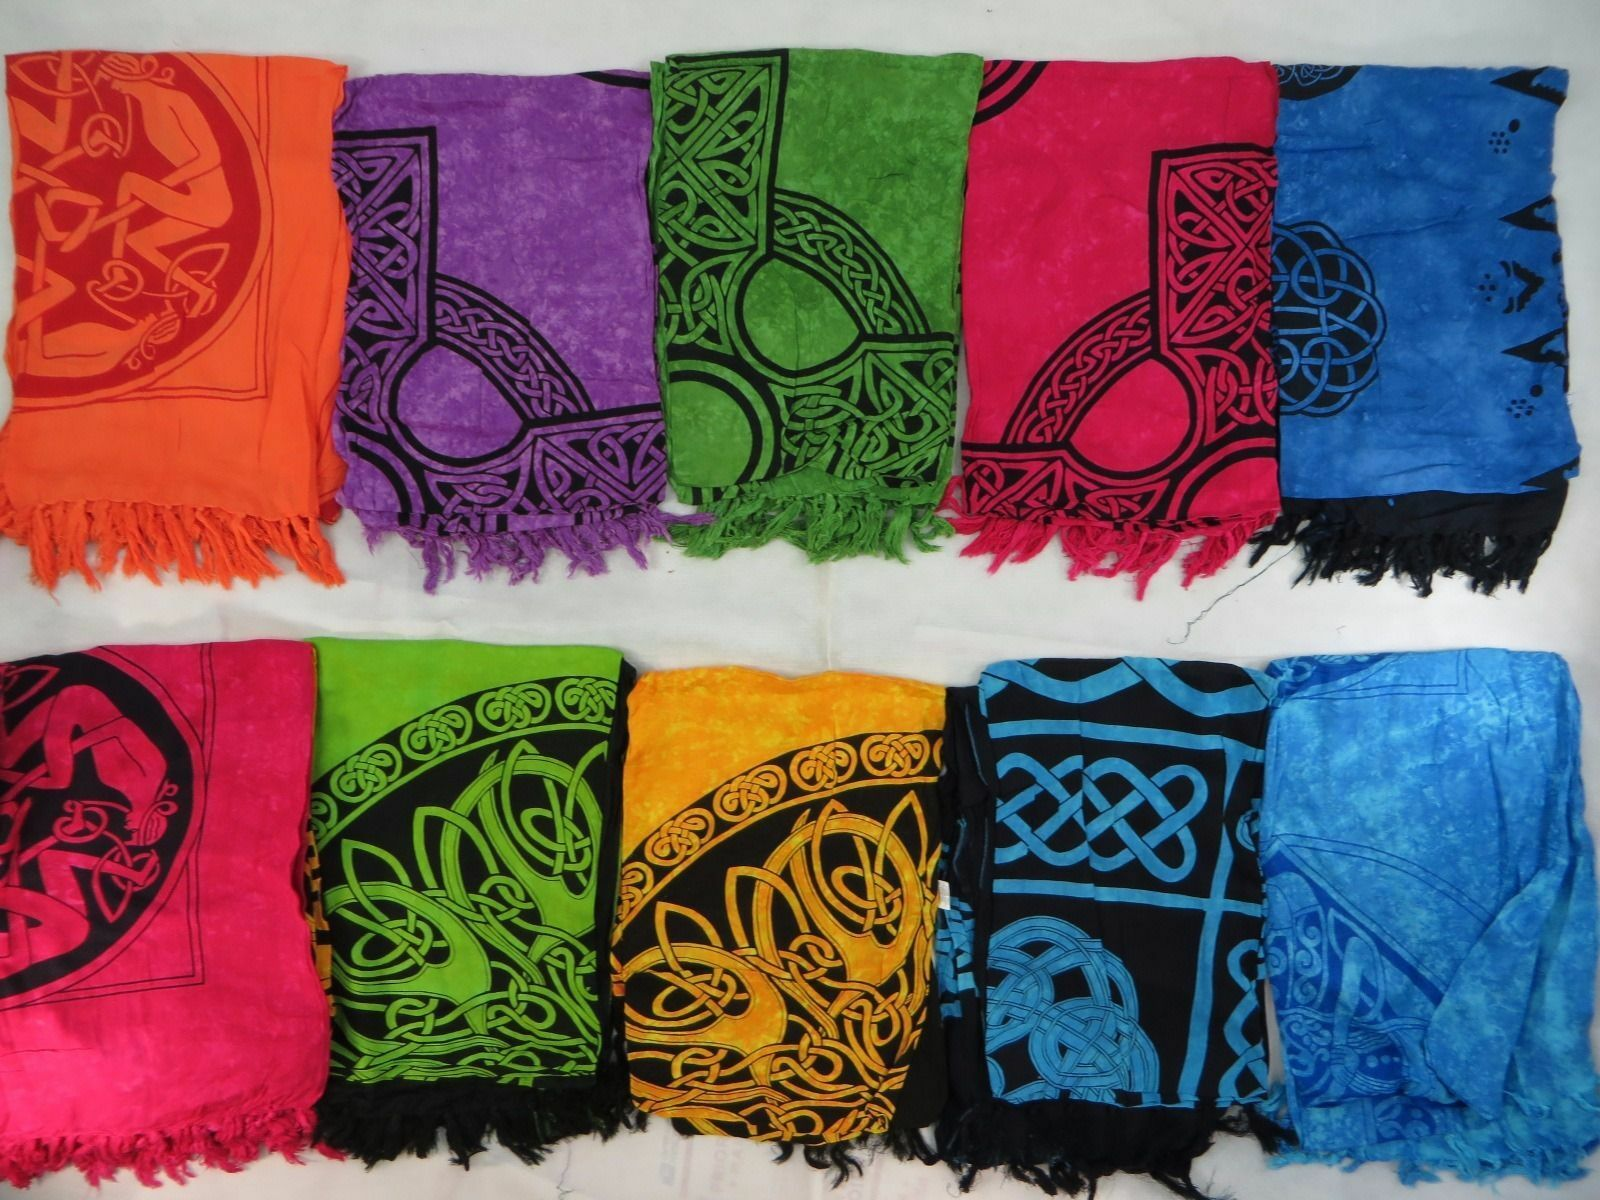 US SELLERlot of 5 Celtic Altar Cloth Scarf Tared Table Cloth Tapestry Sarong